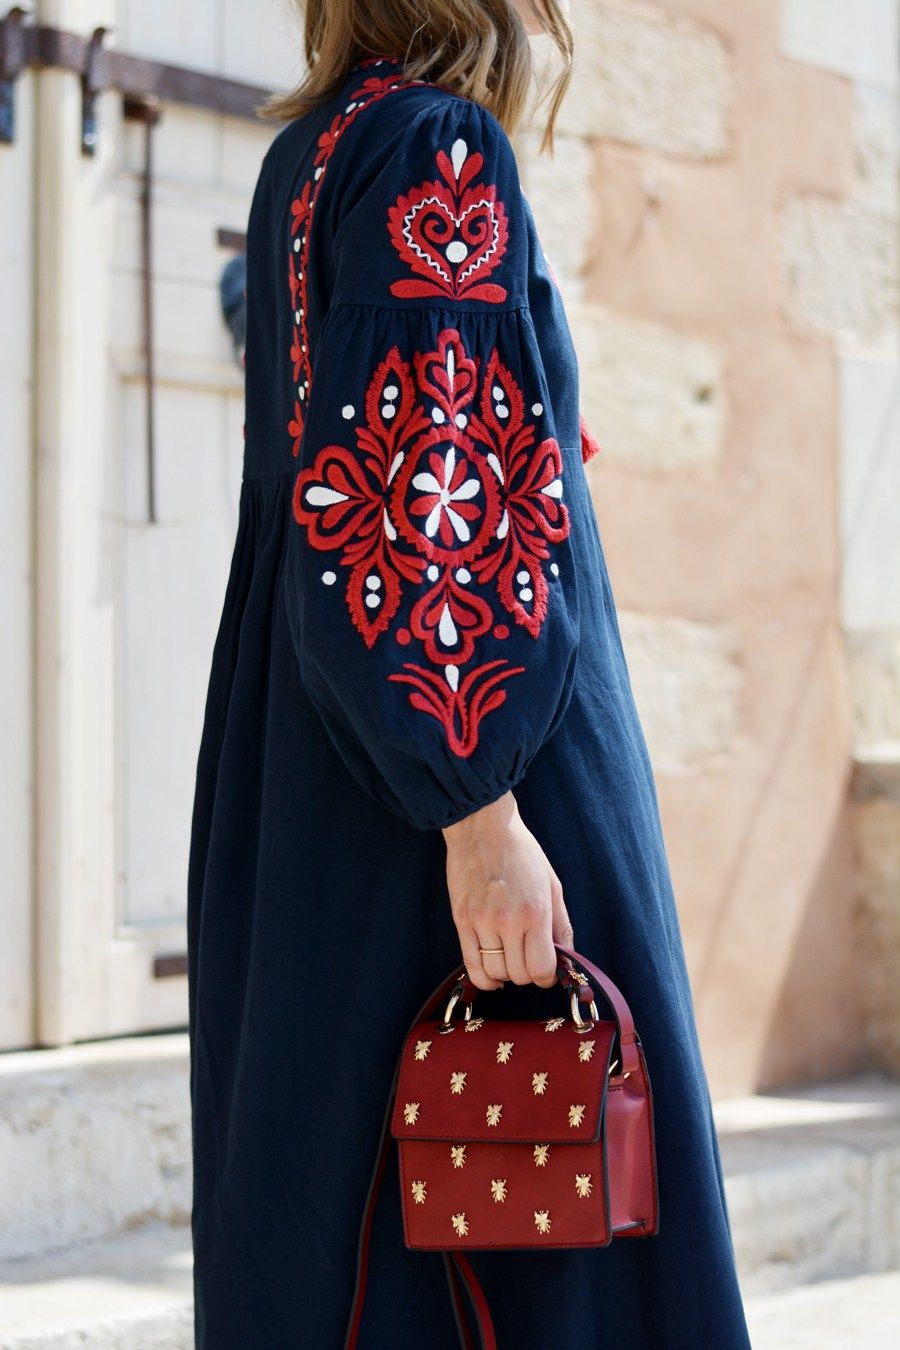 More on Long Dress with Ethno